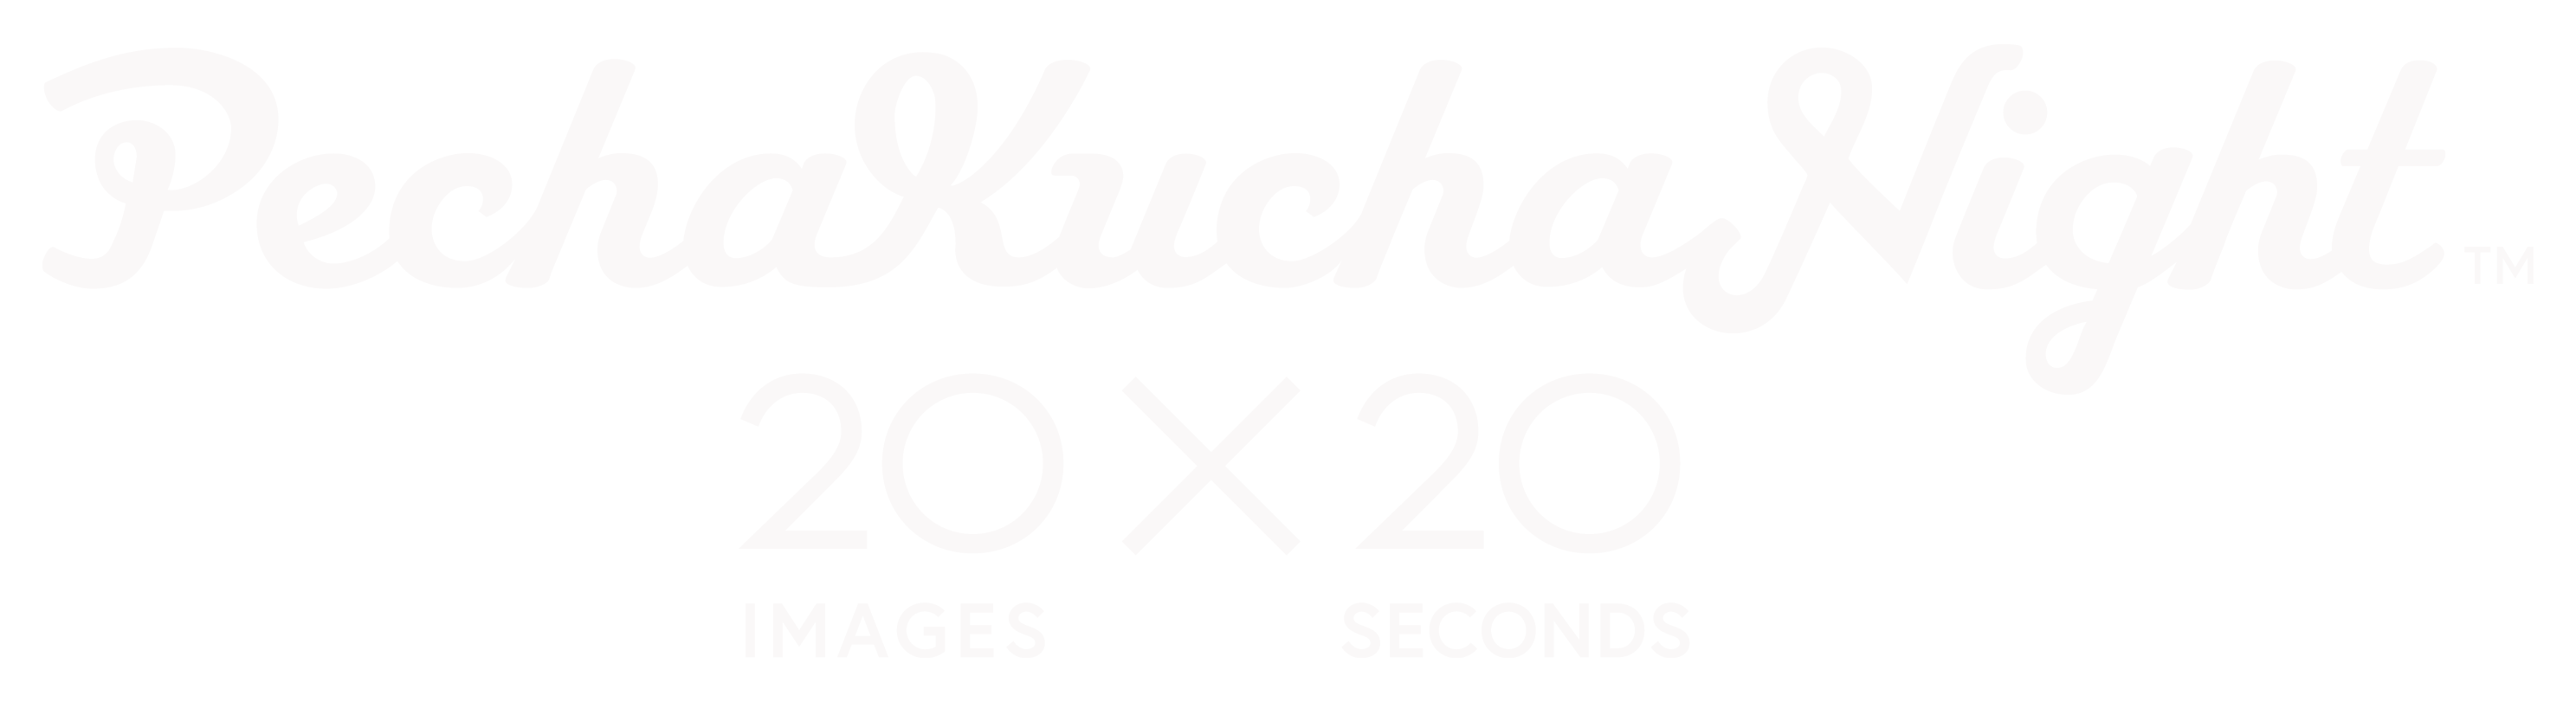 pecha kucha night ostrava logo